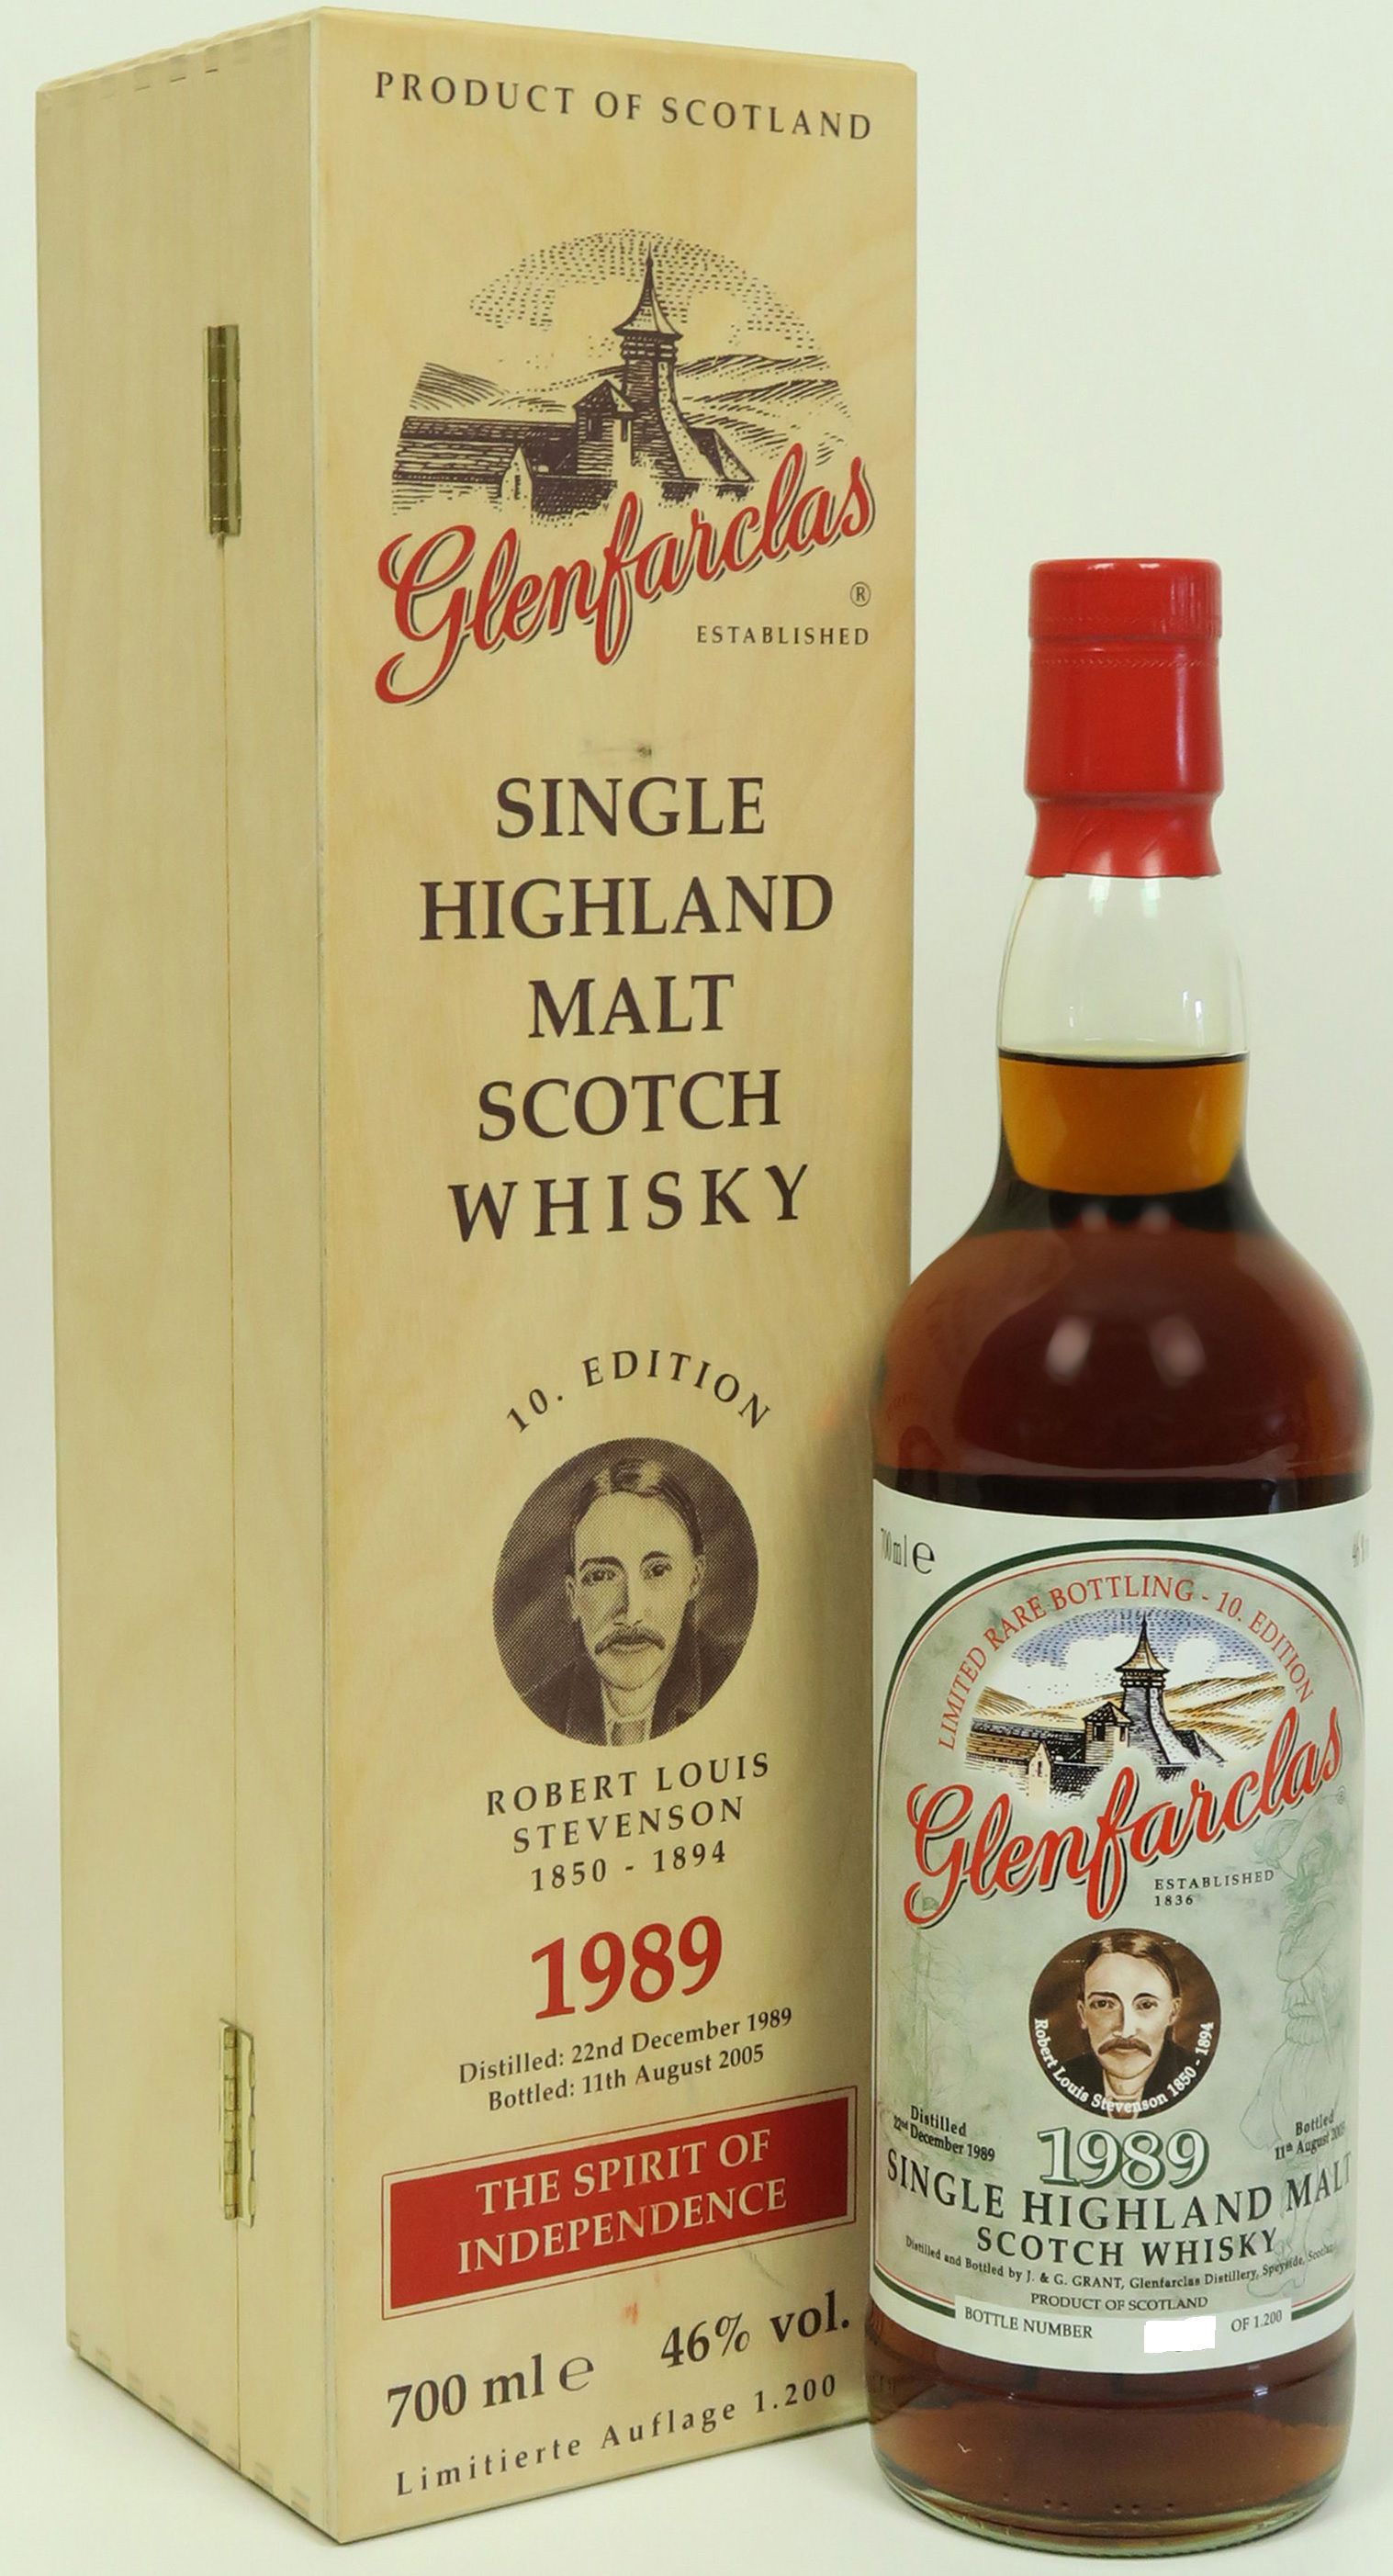 Glenfarclas Edition No. 10 Robert Louis Stevenson